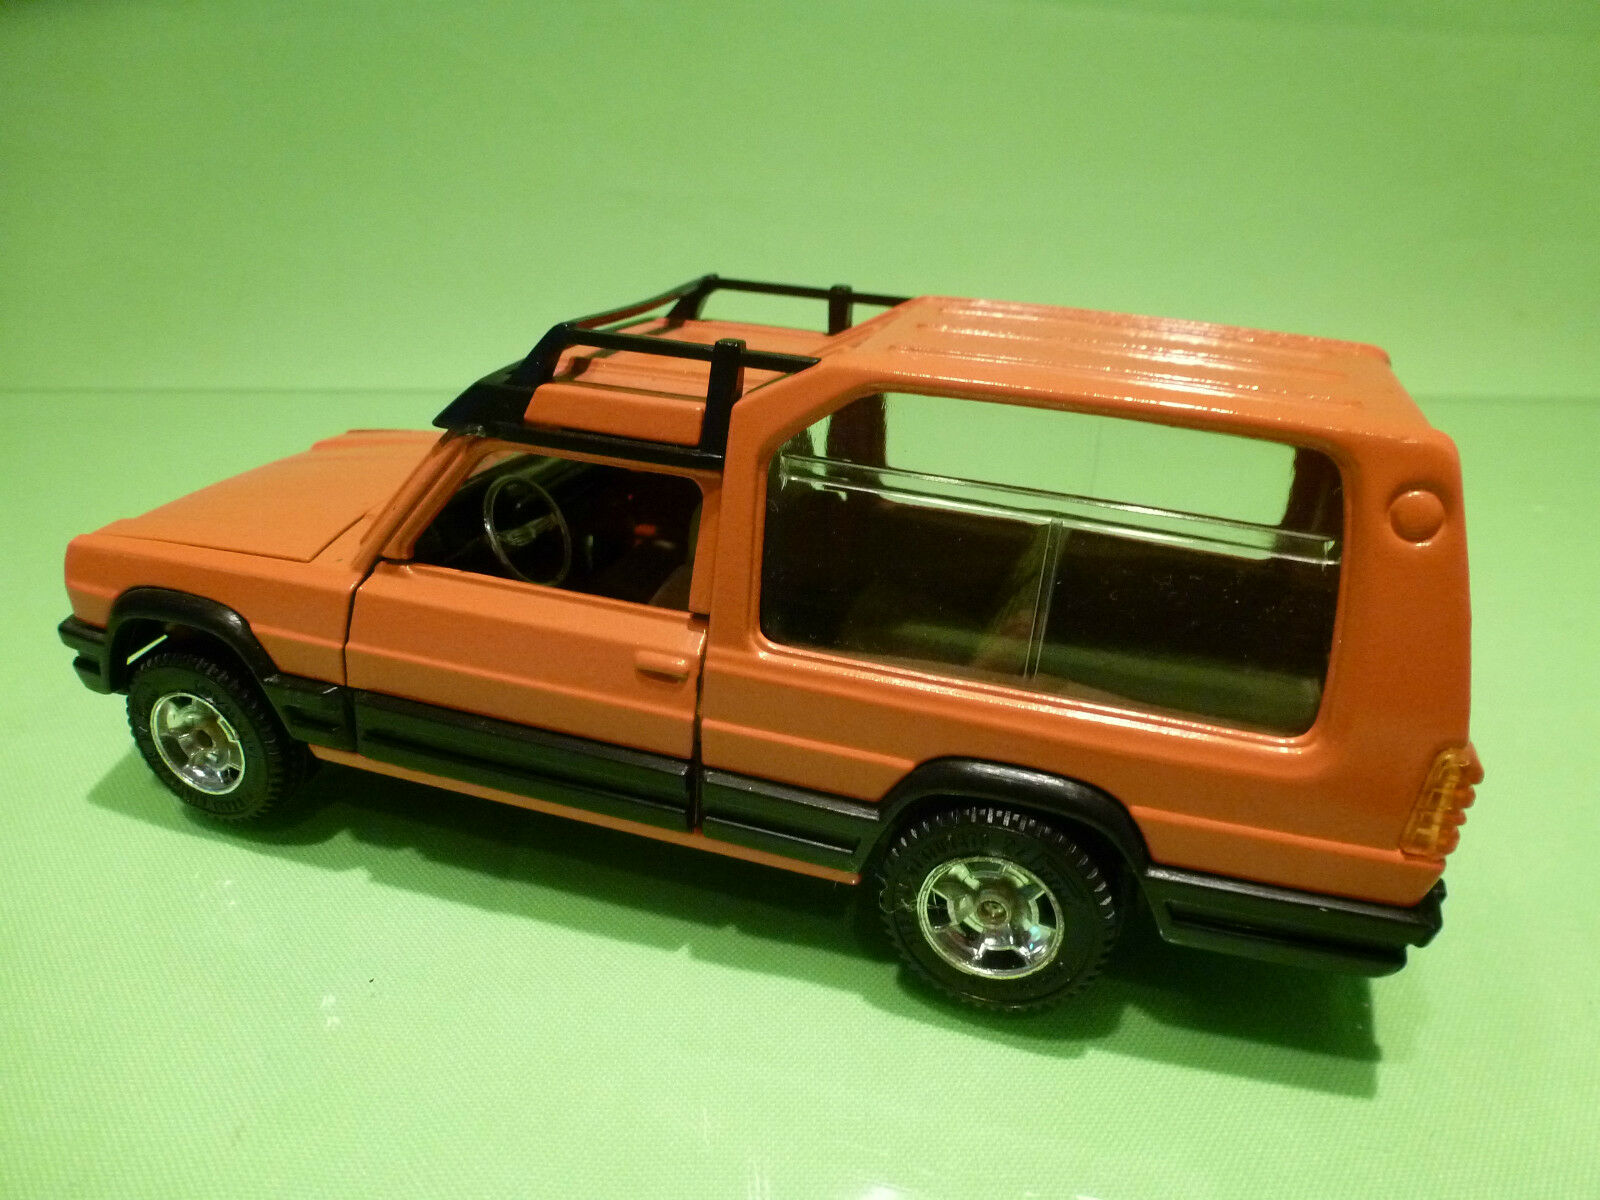 MEBETOYS 6747 6747 6747 MATRA SIMCA RANCHO - orange 1 25 - EXCELLENT CONDITION d52096